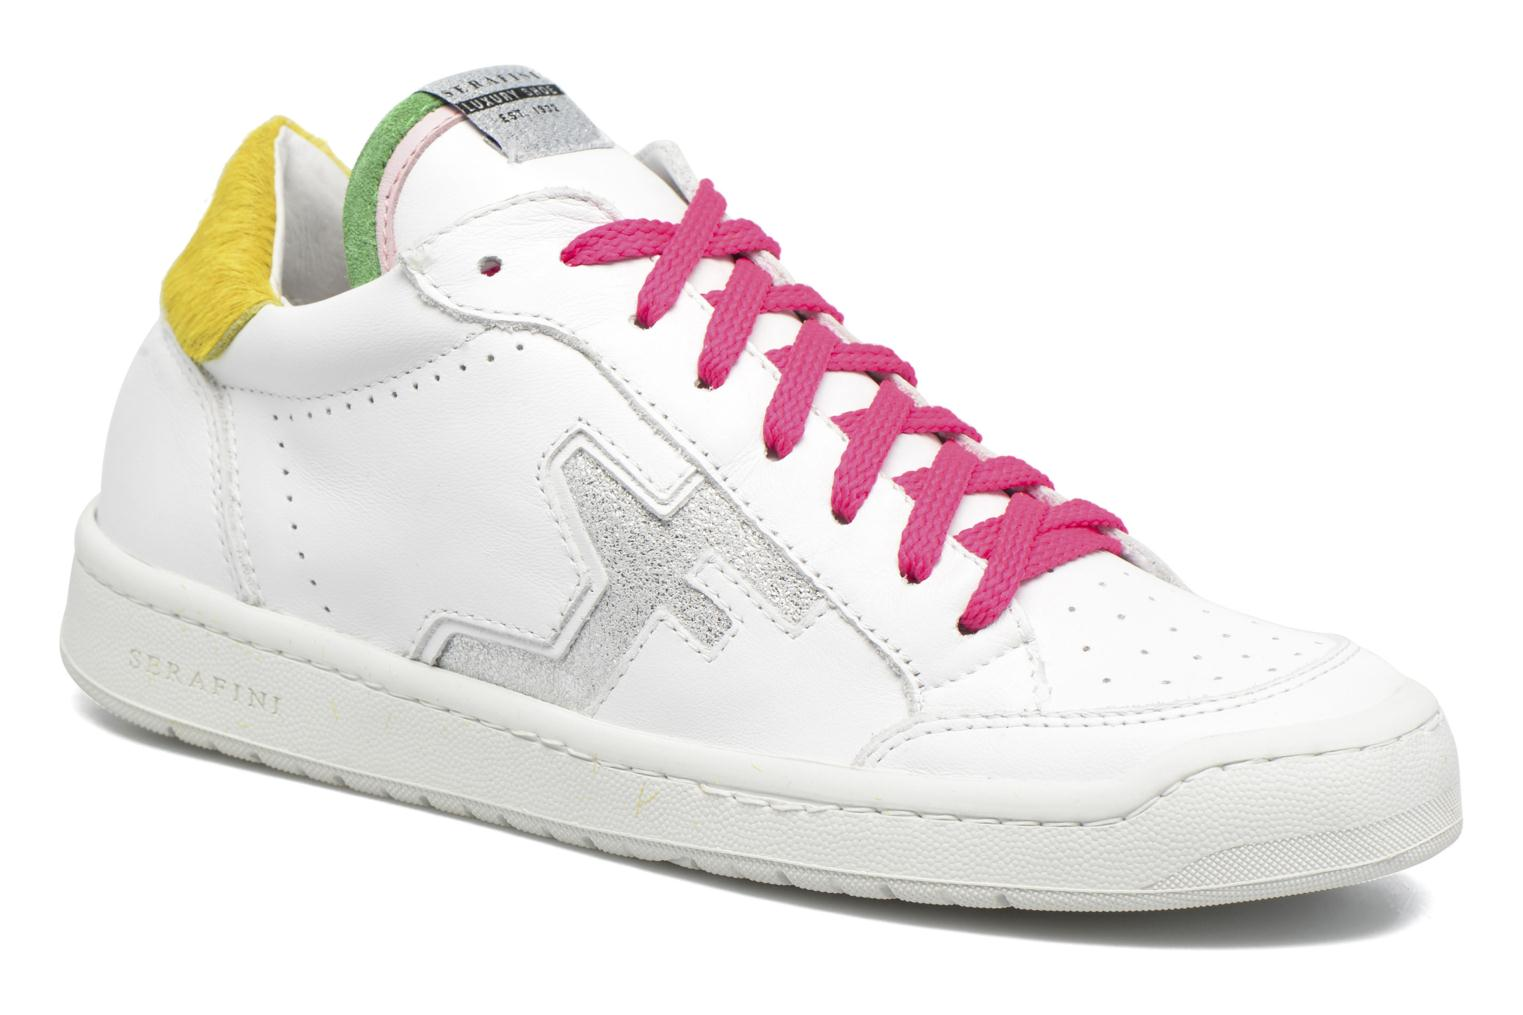 Marques Chaussure femme Serafini femme San Diego Low White & Multicolor